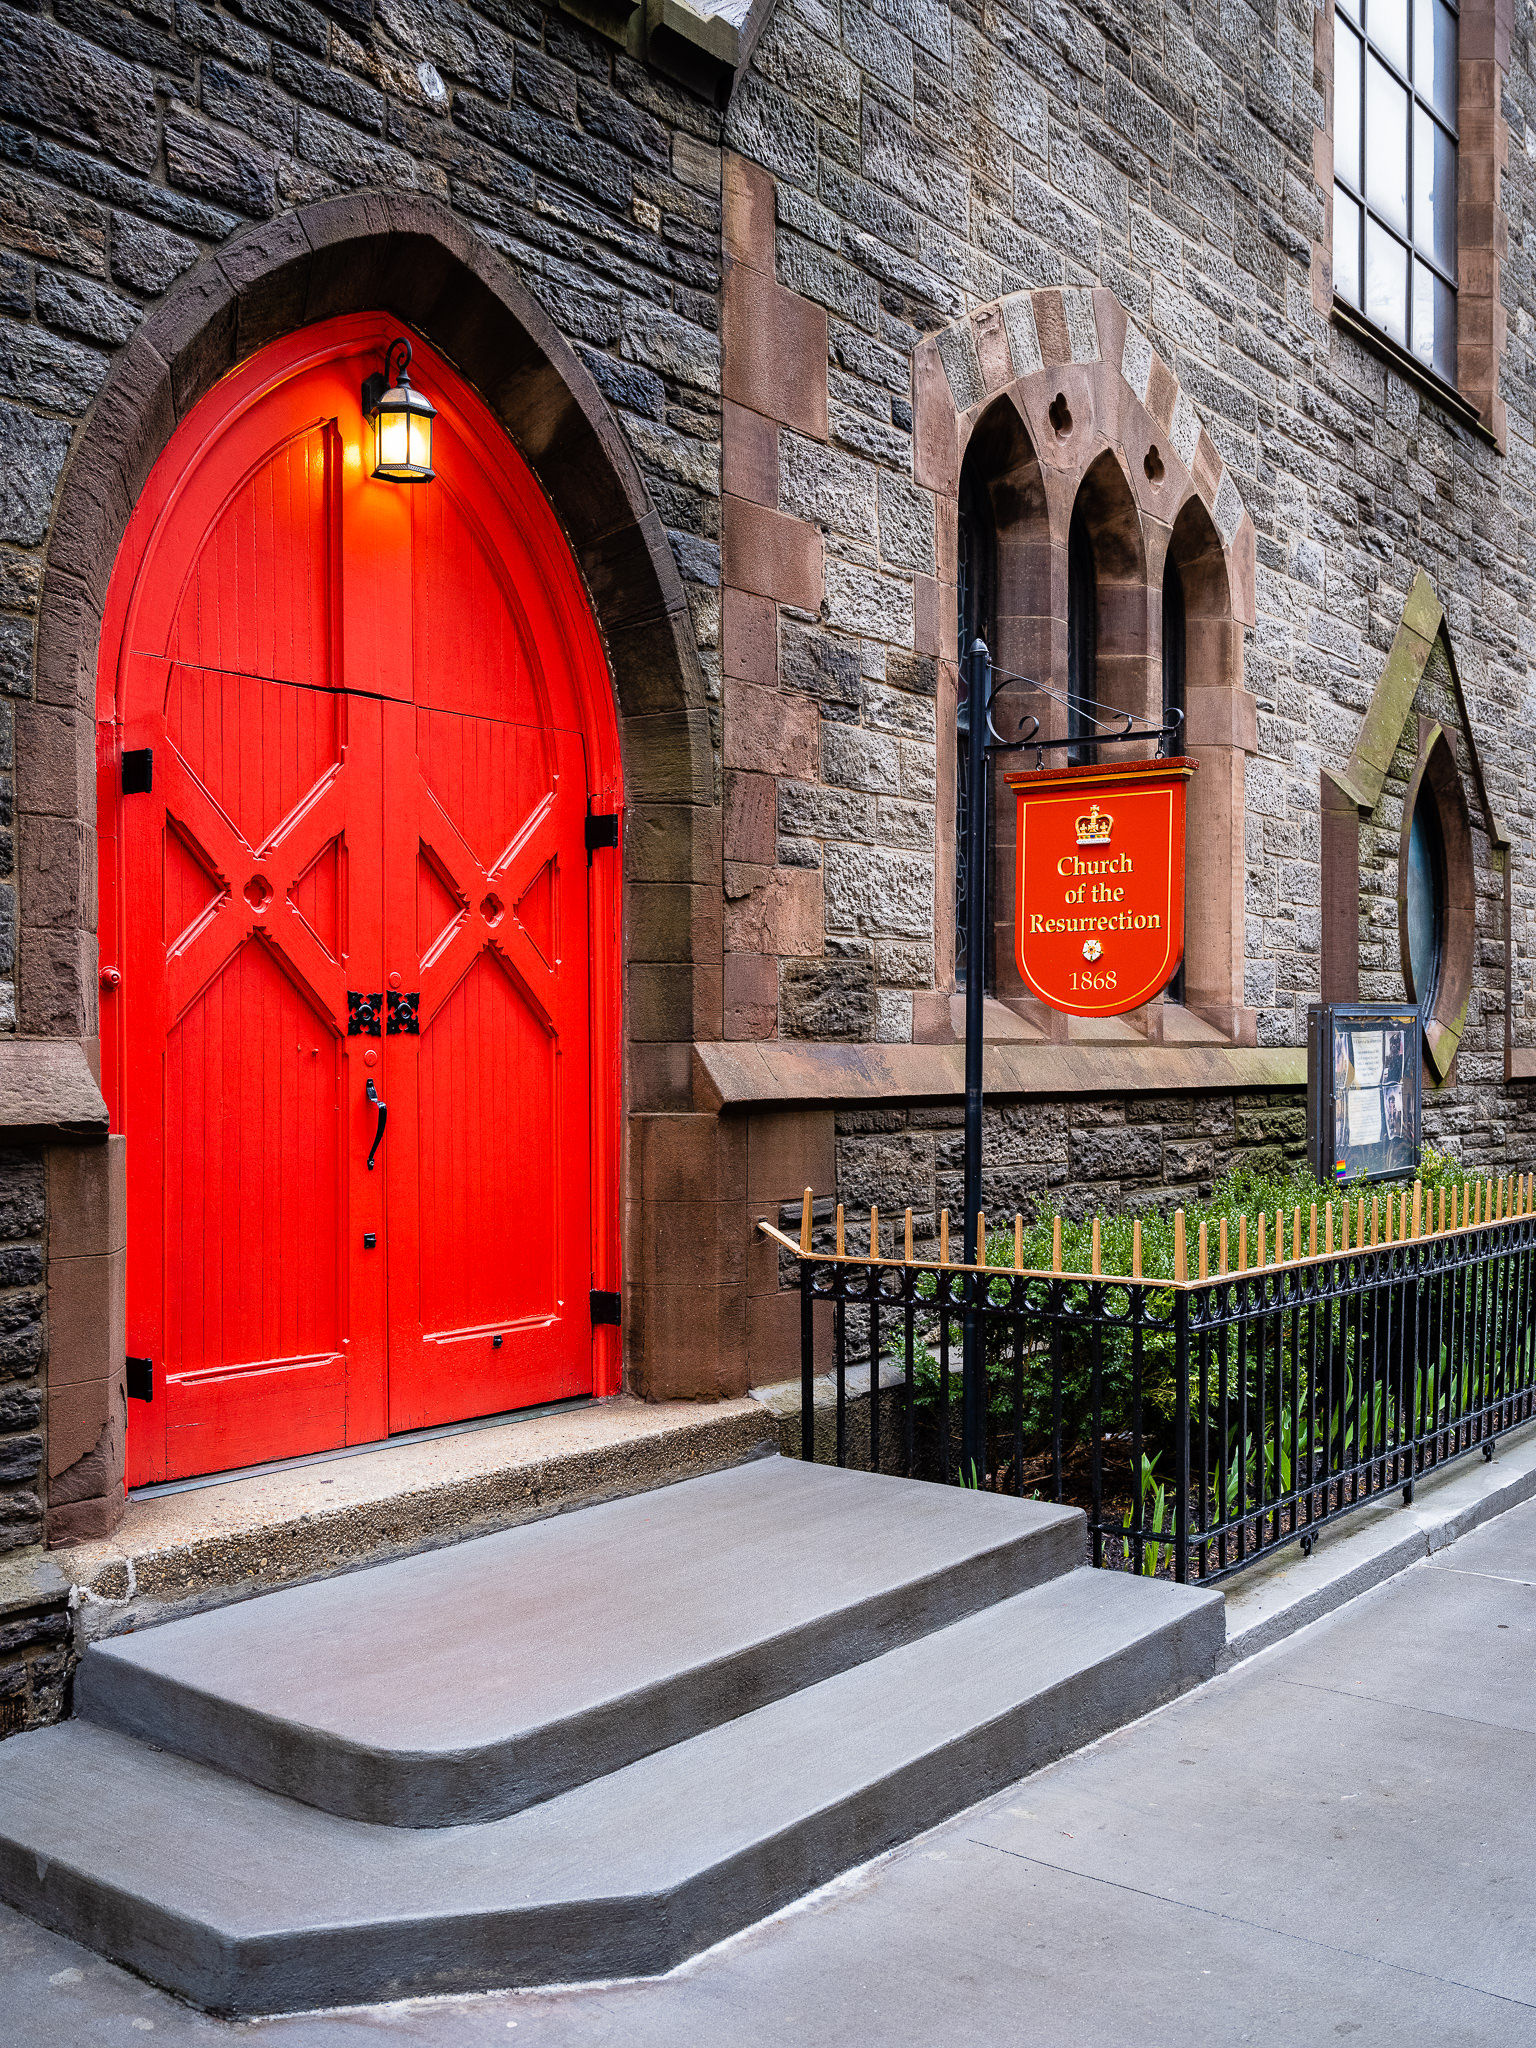 a photo of a church with a red door and red sign in new york city